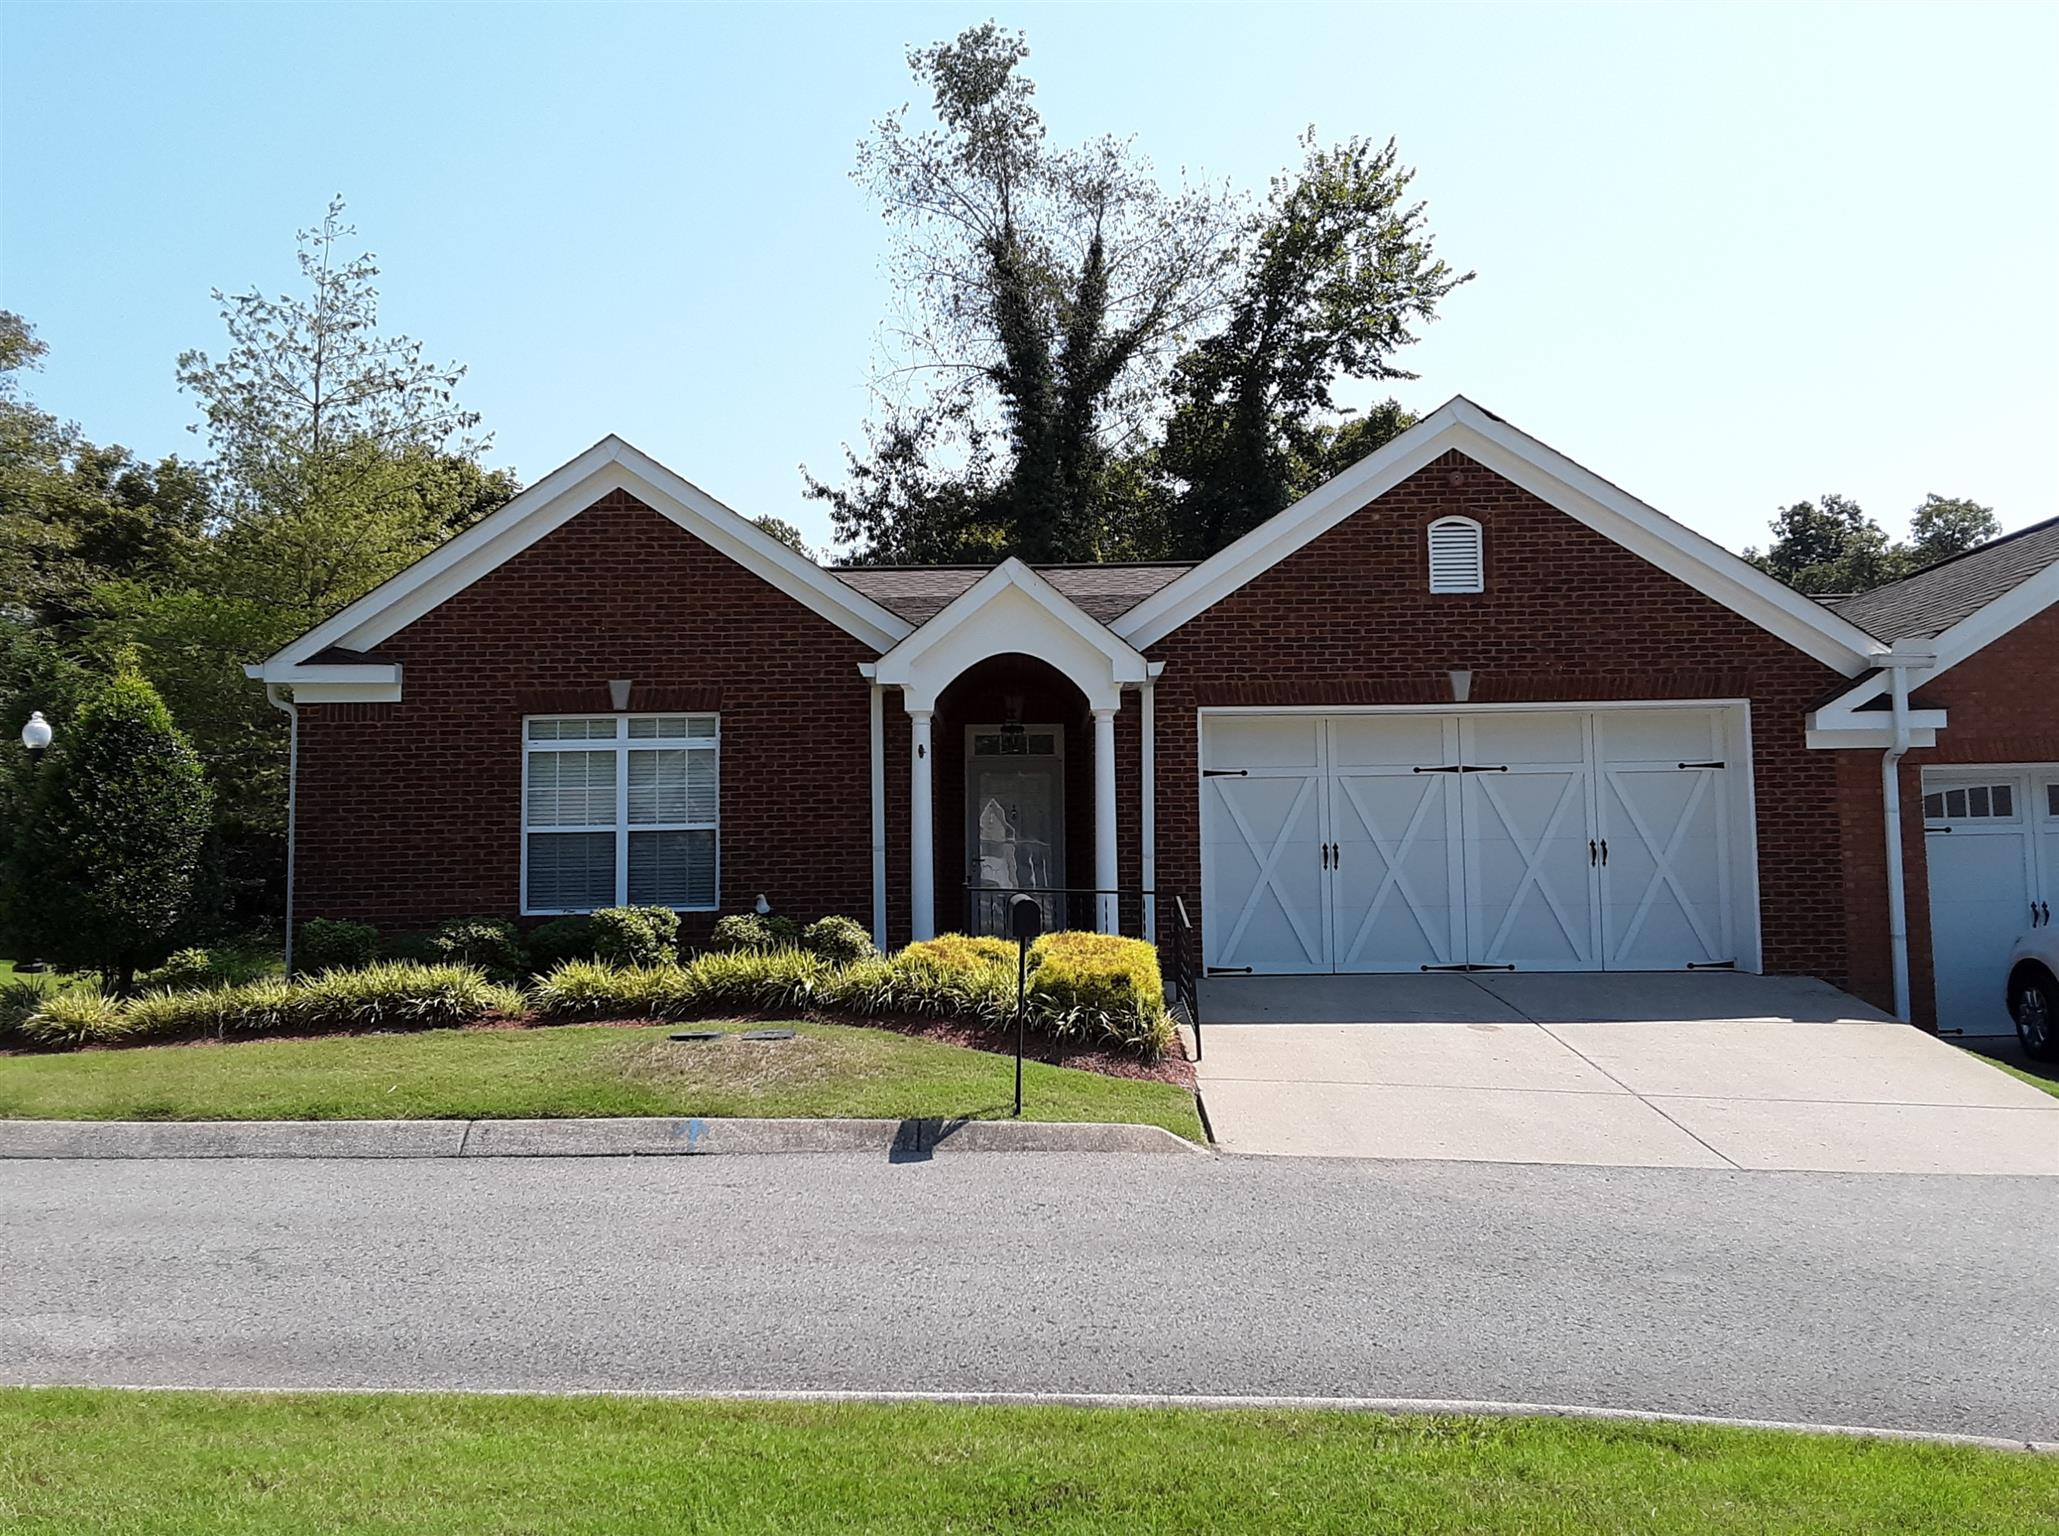 198 Clark Cir, Ashland City, TN 37015 - Ashland City, TN real estate listing